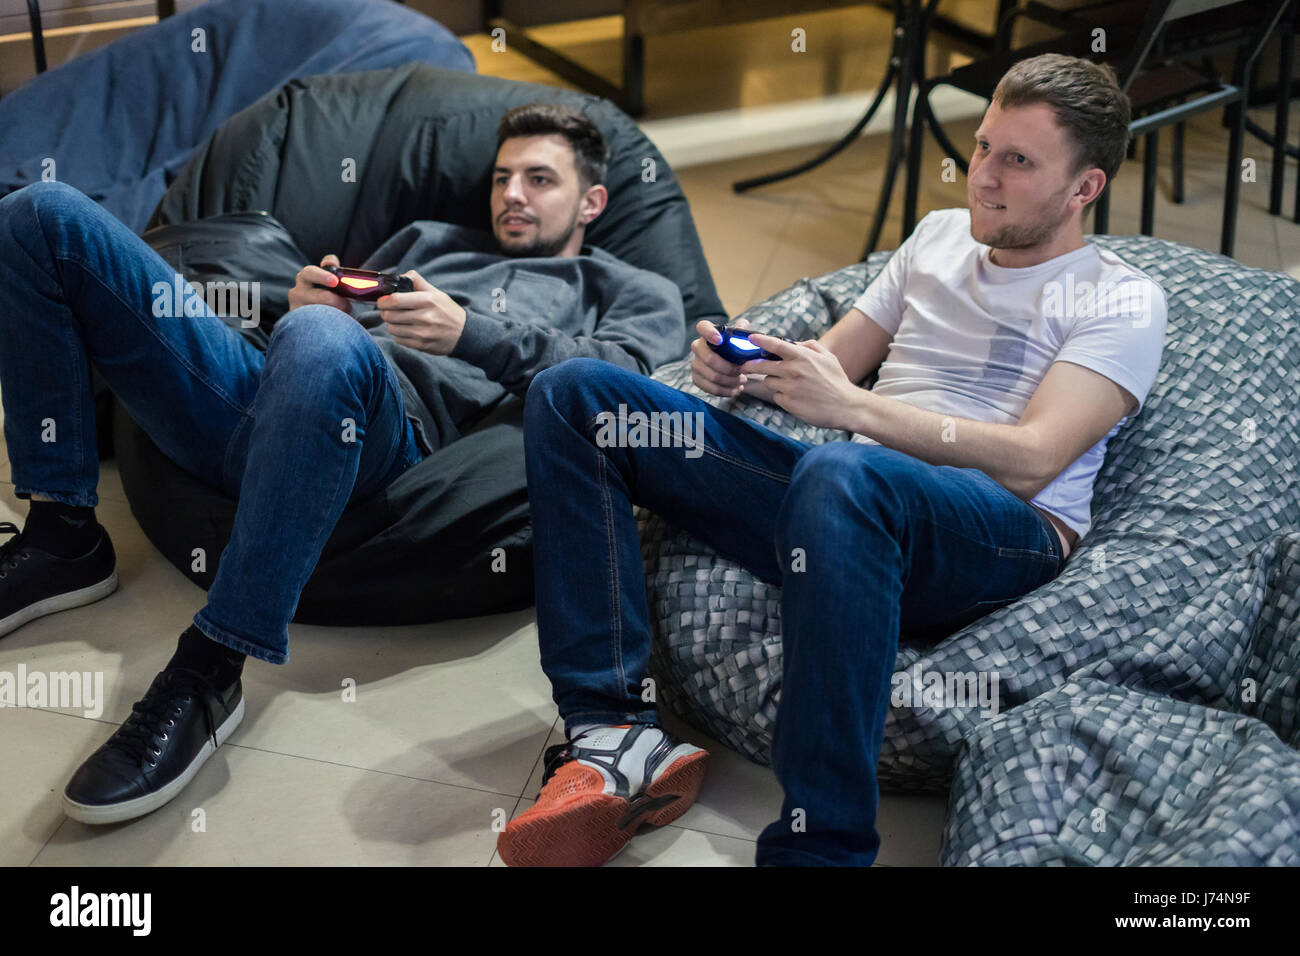 happy couple friends playing video games with joystick sitting on Bean bag chair - Stock Image